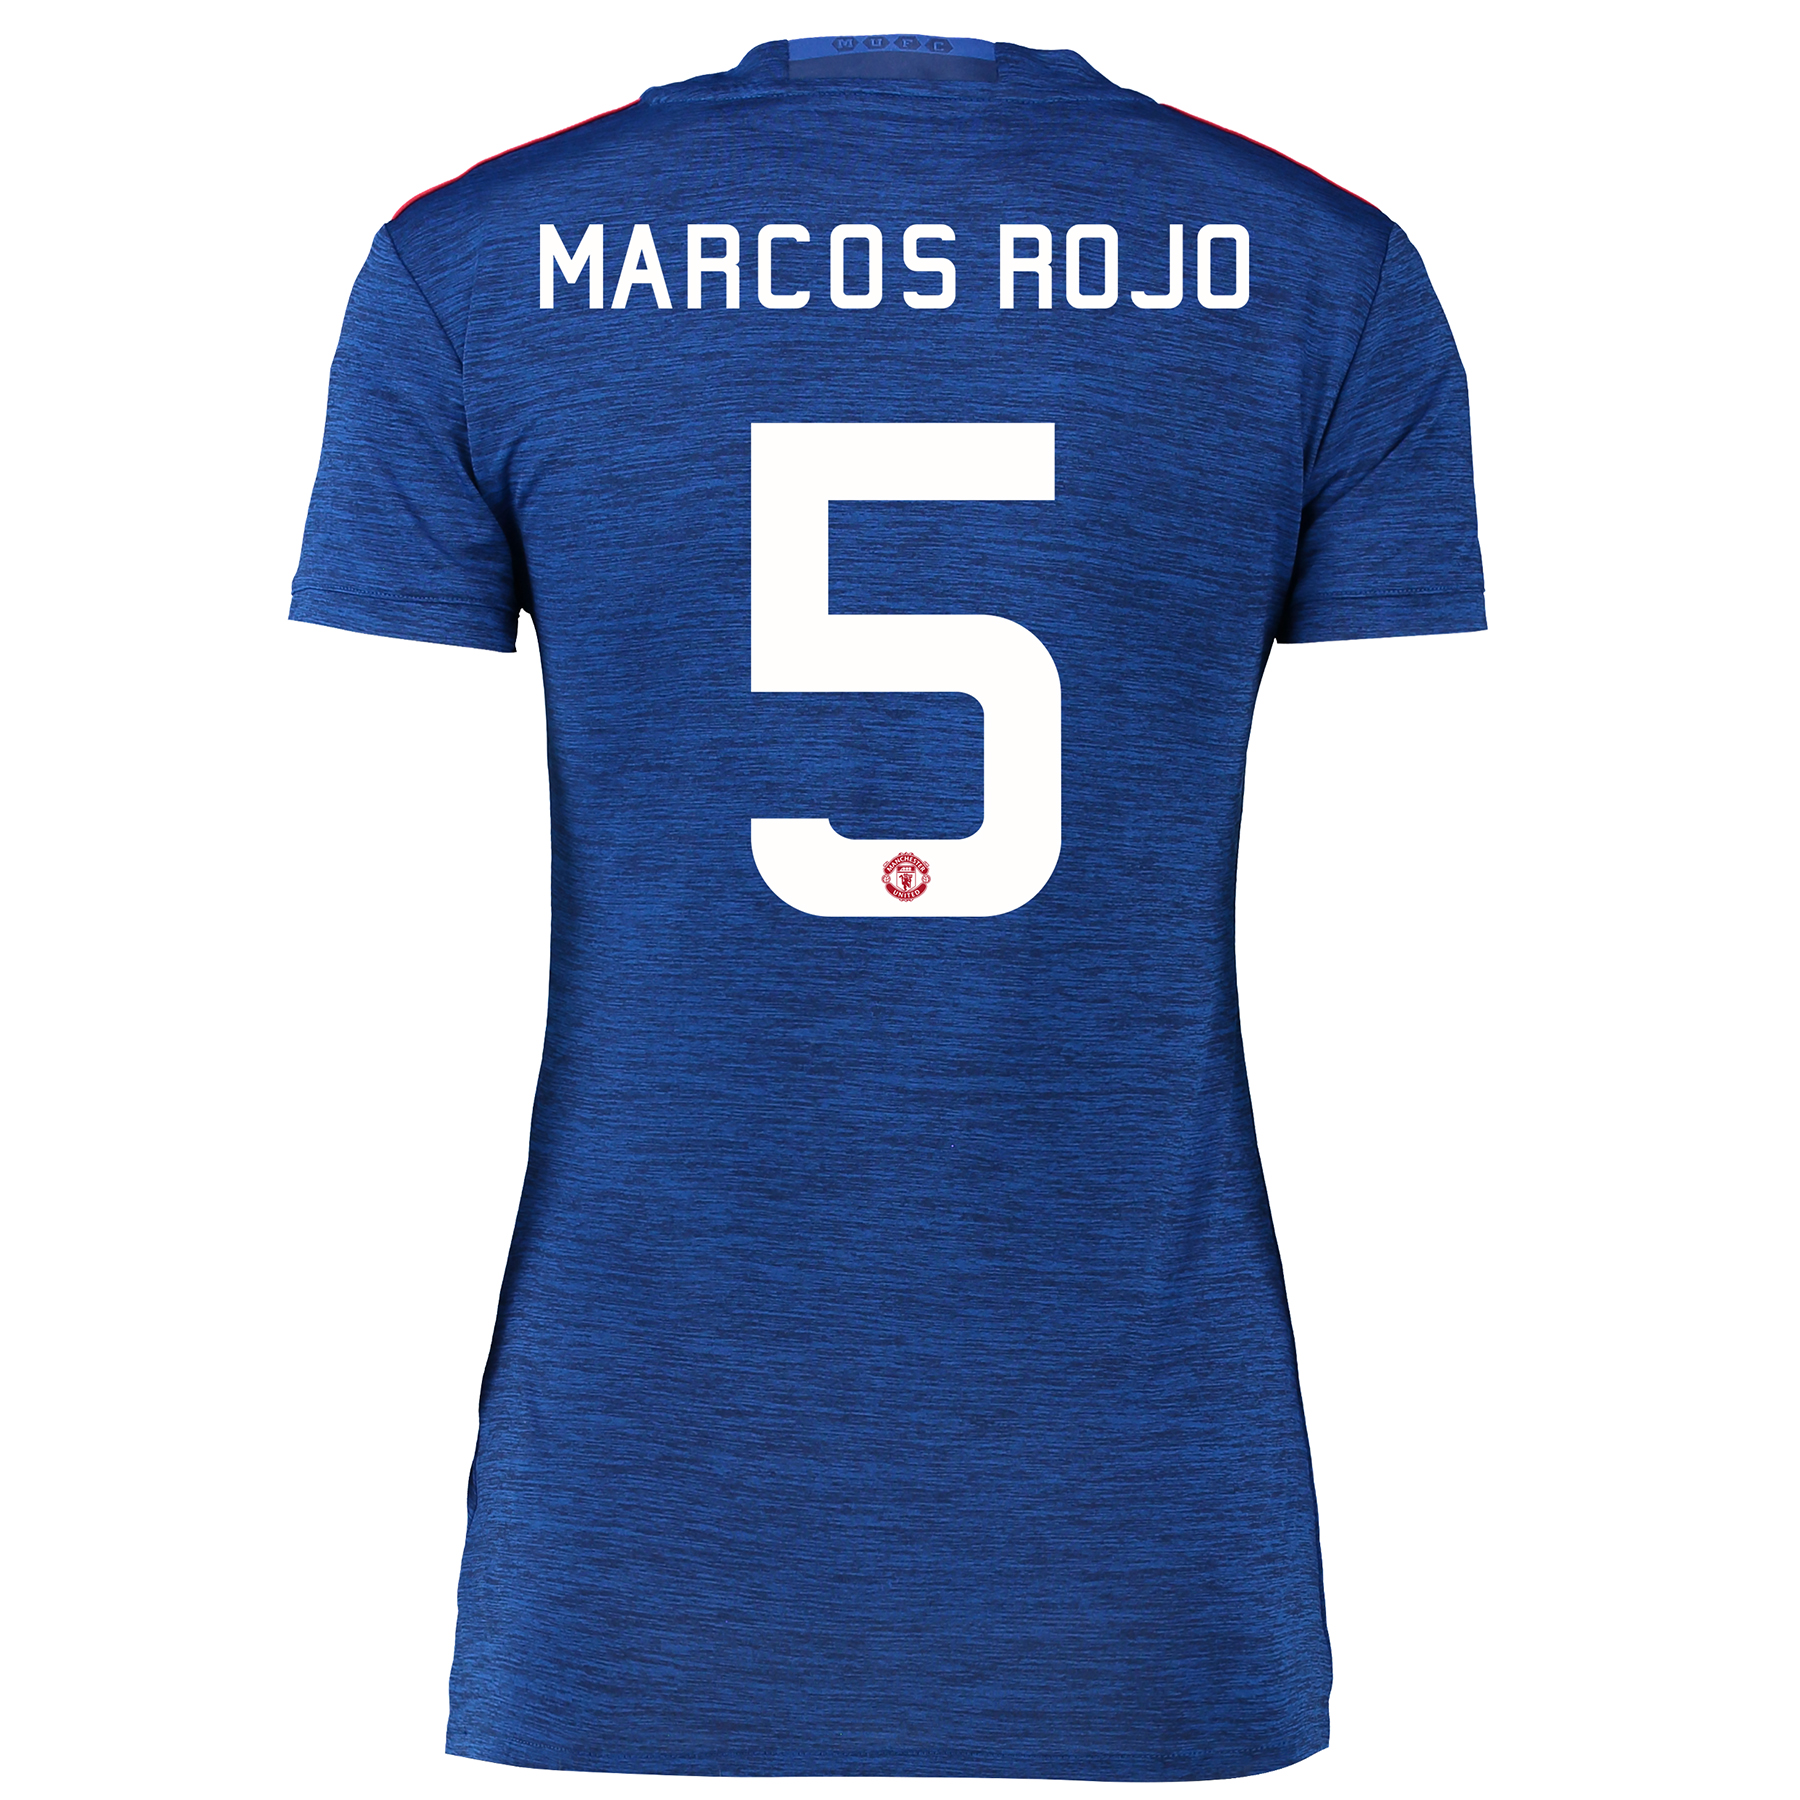 Manchester United Cup Away Shirt 2016-17 - Womens with Marcos Rojo 5 p